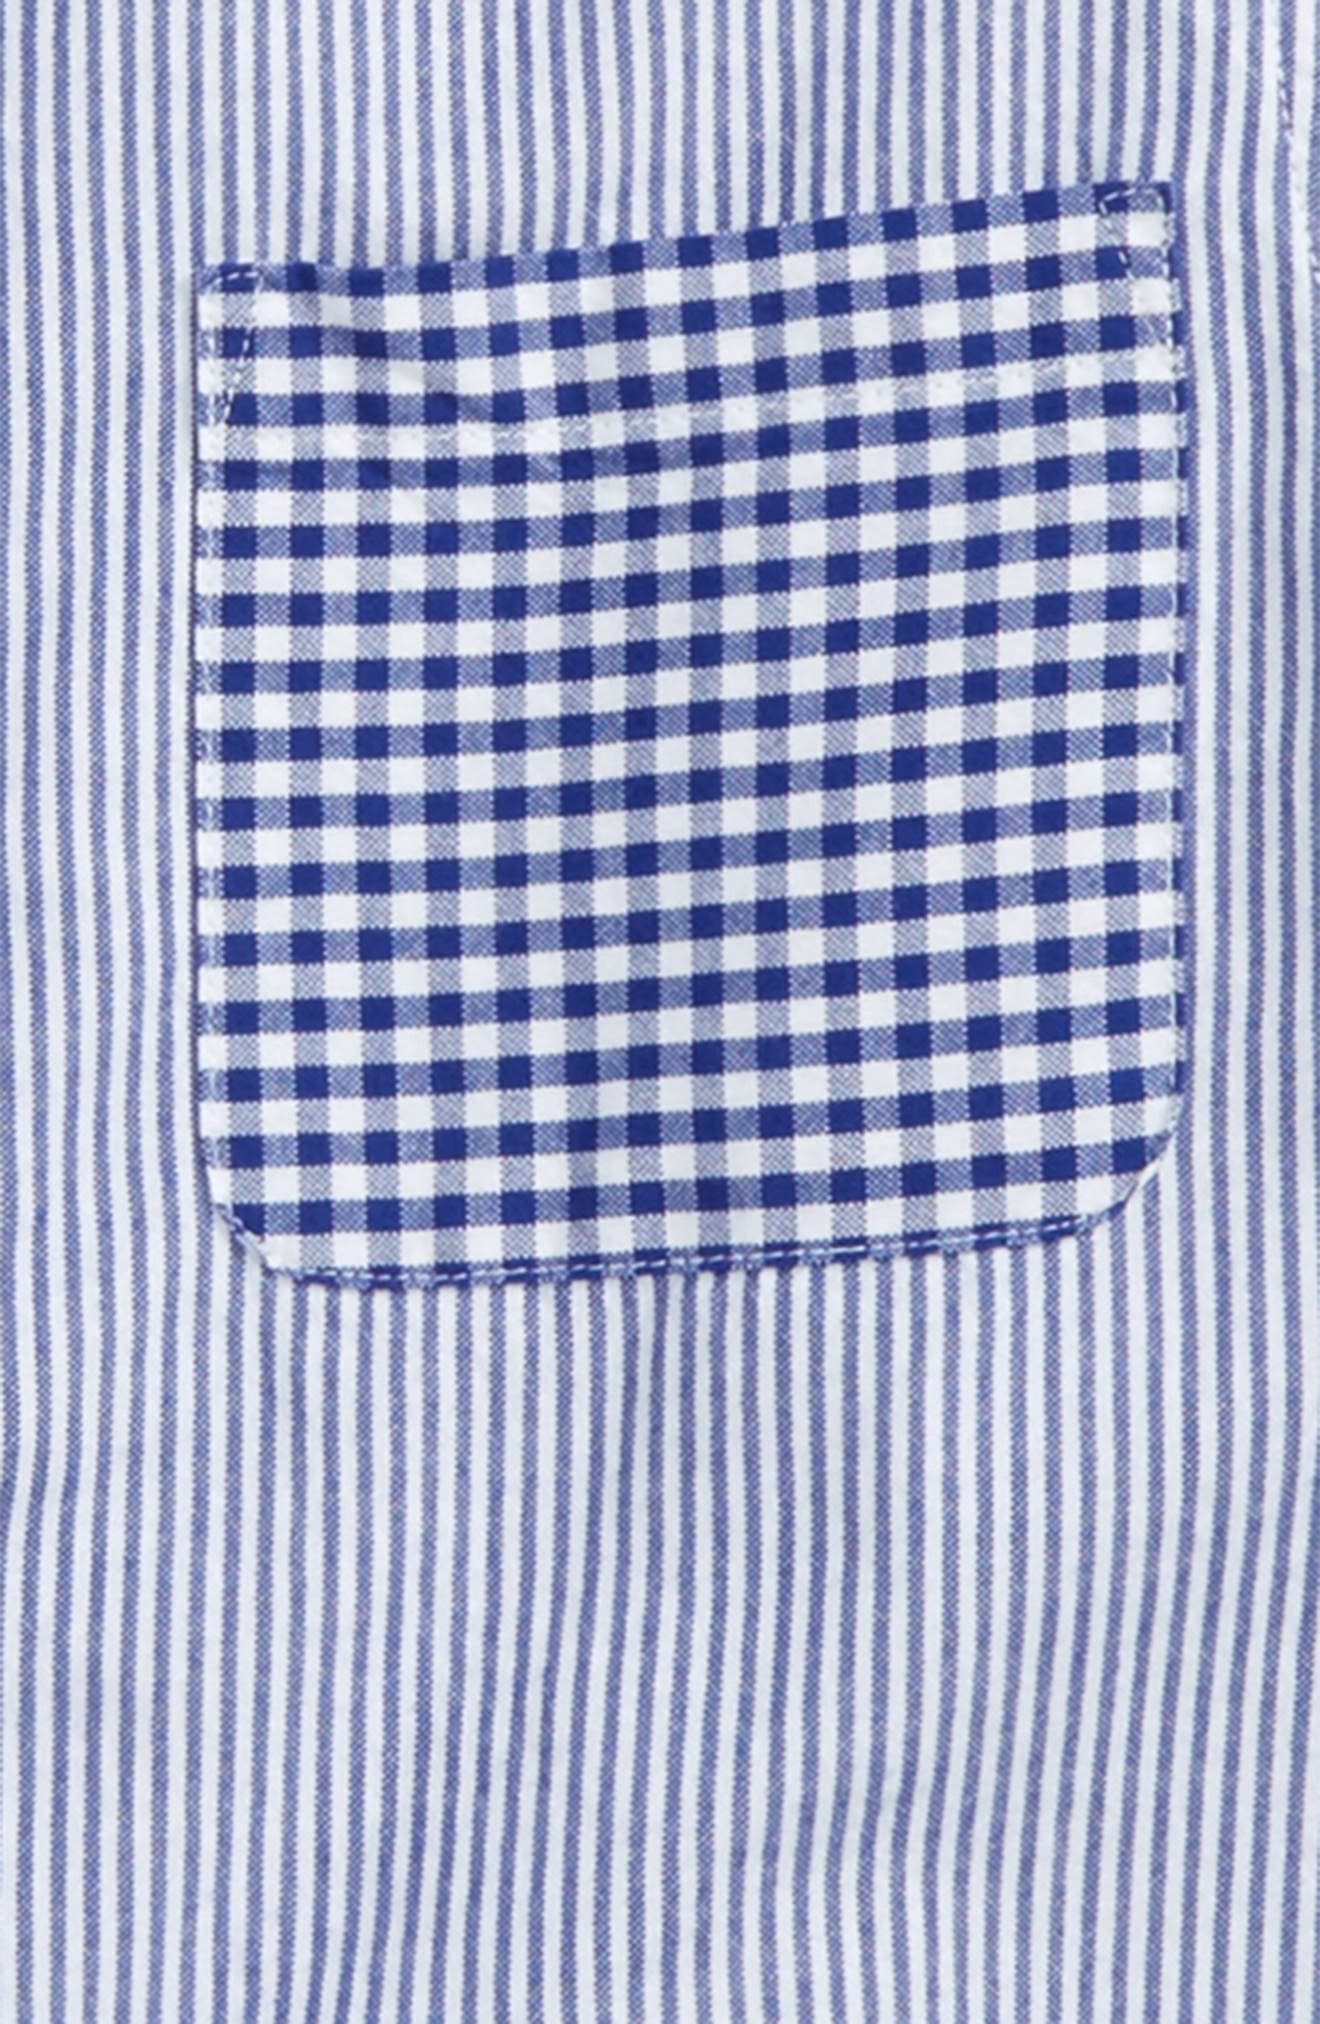 Alternate Image 3  - Mini Boden Hotchpotch Mixed Pattern Dress Shirt (Toddler Boys, Little Boys & Big Boys)